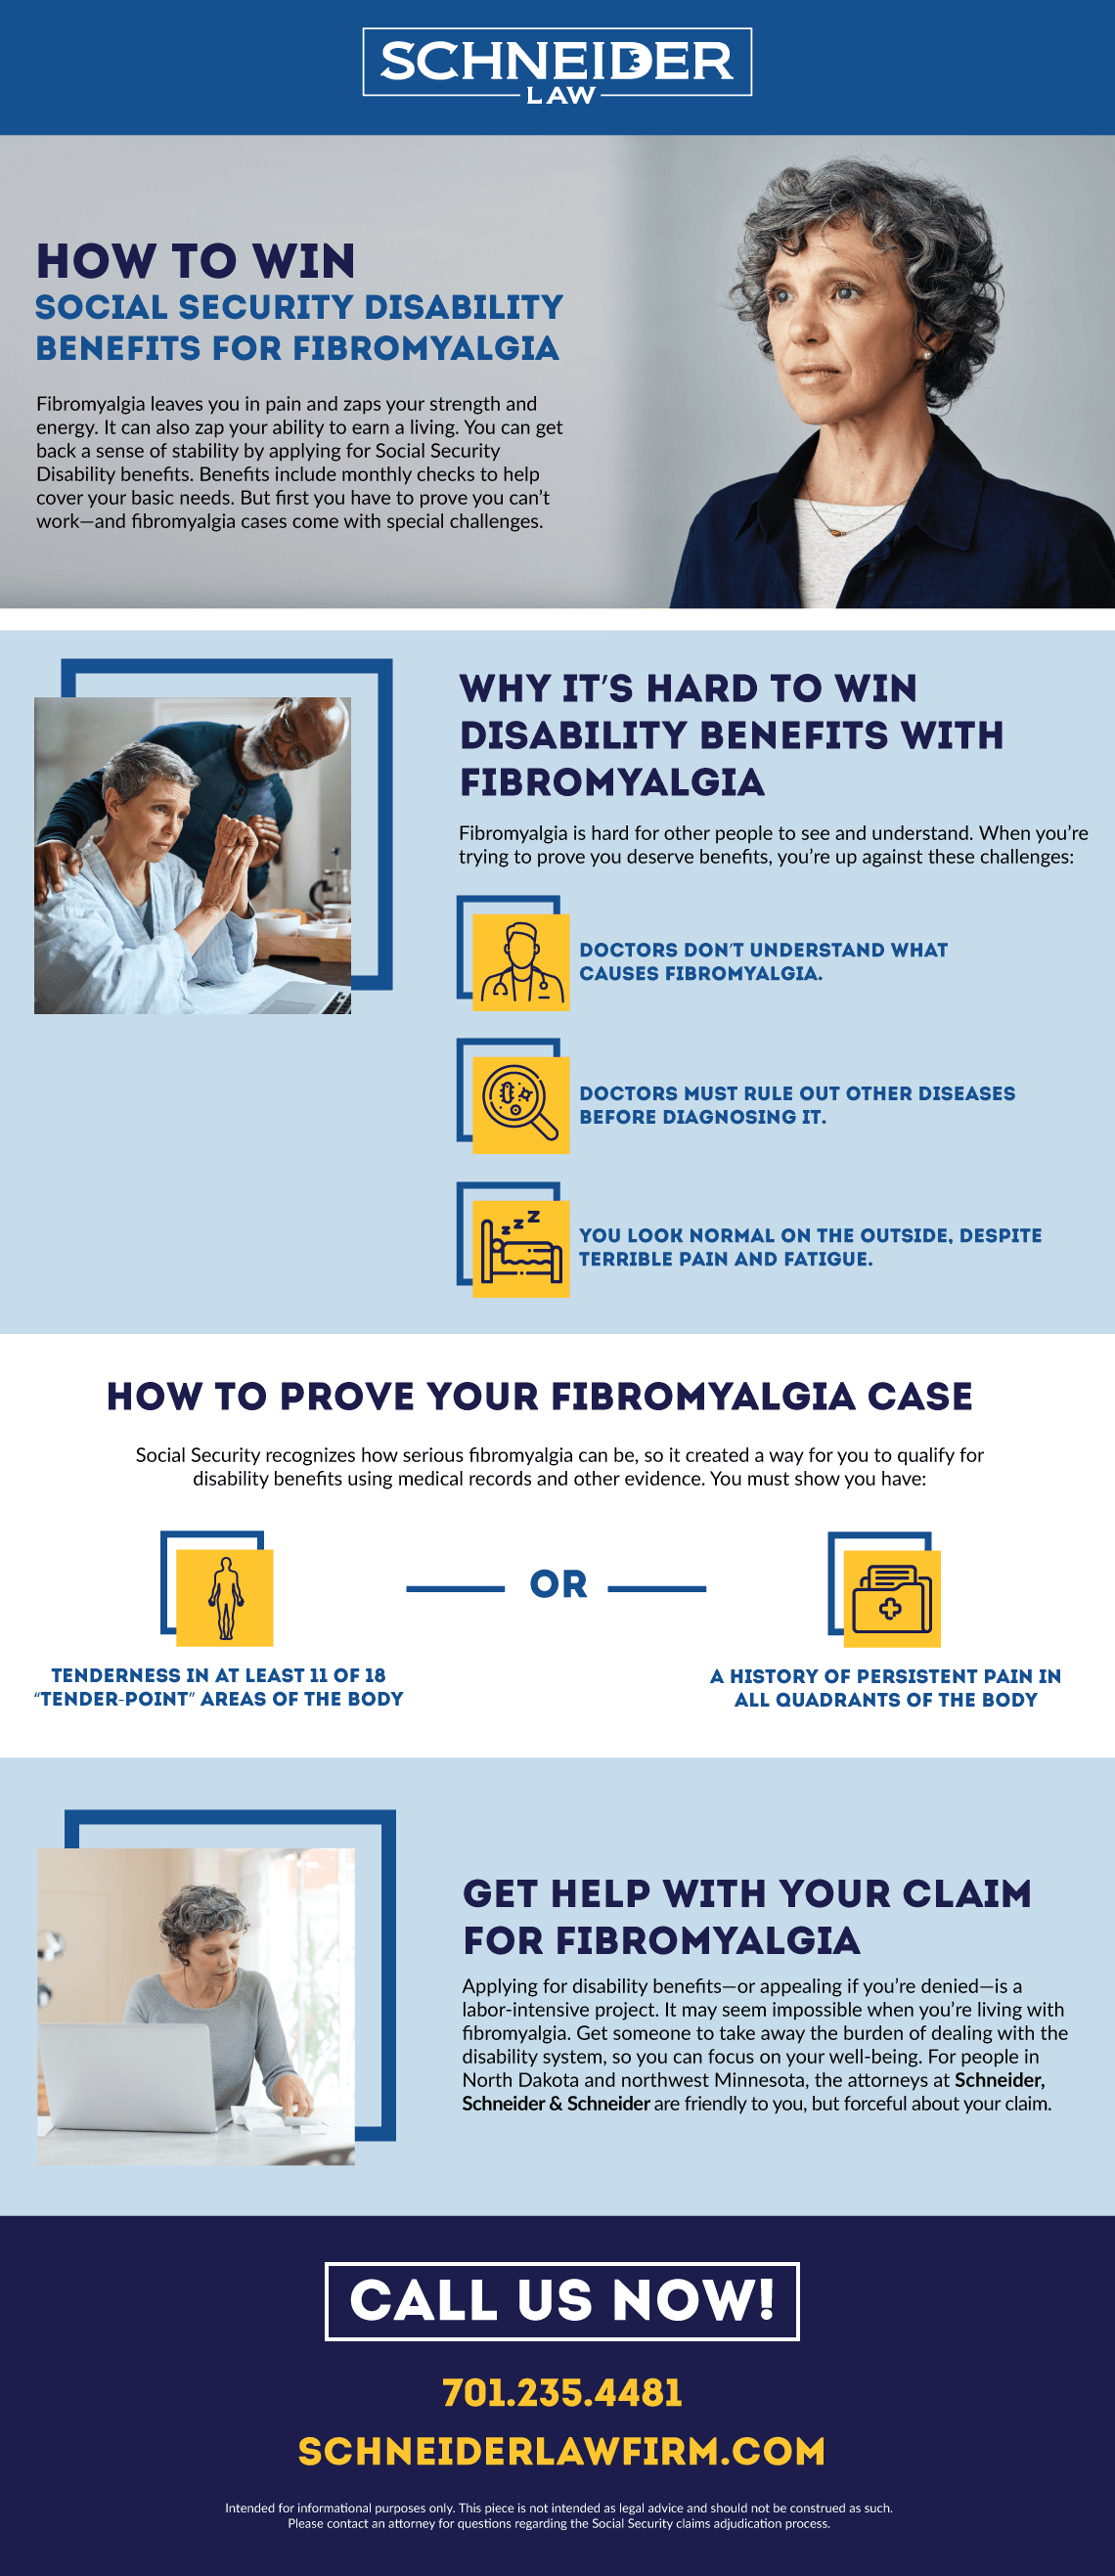 How to Win Social Security Disability Benefits for Fibromyalgia infographic